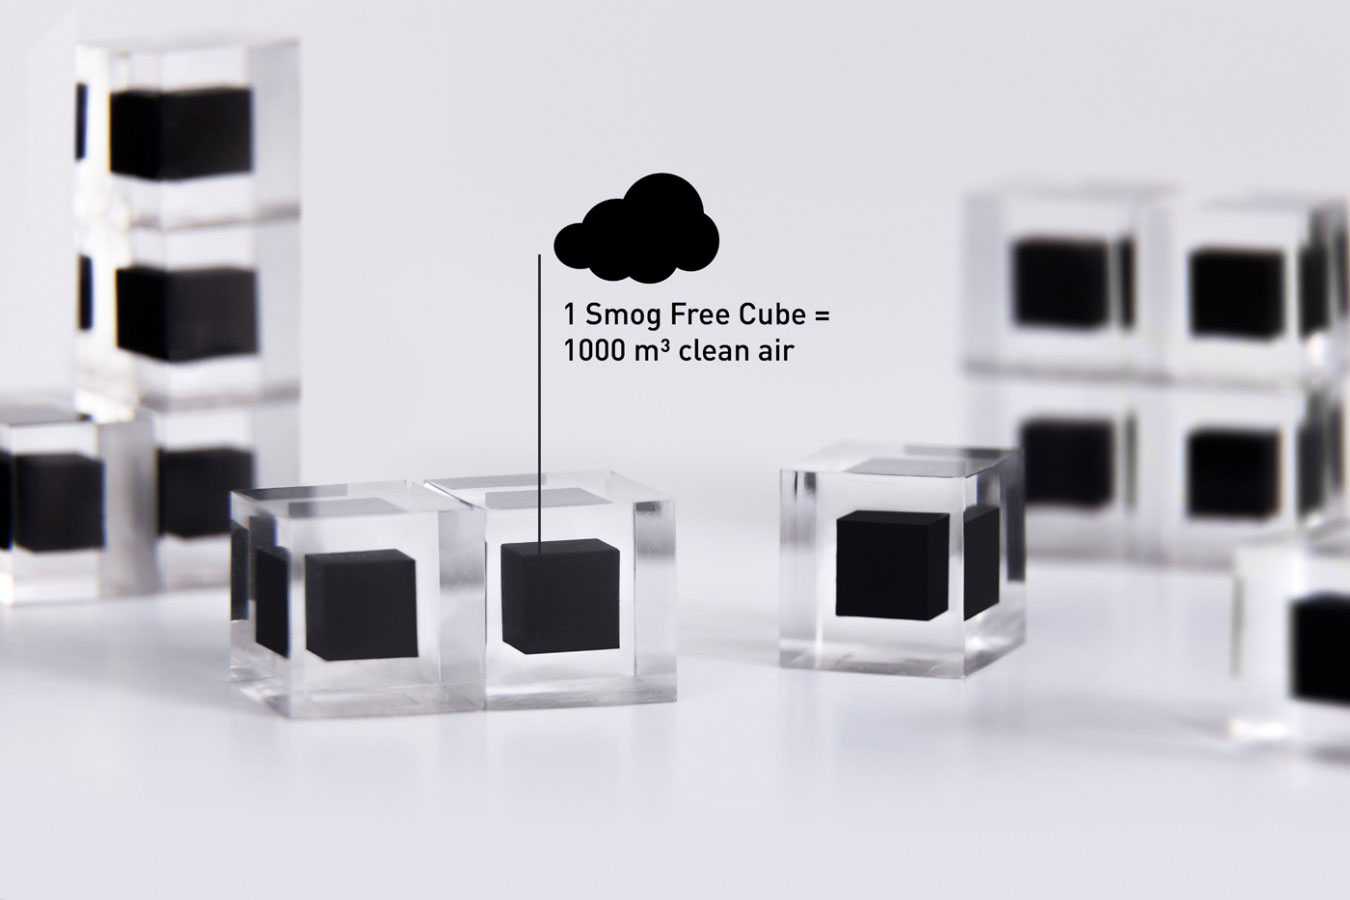 Smog Free Cubes made from smog in transparent resin